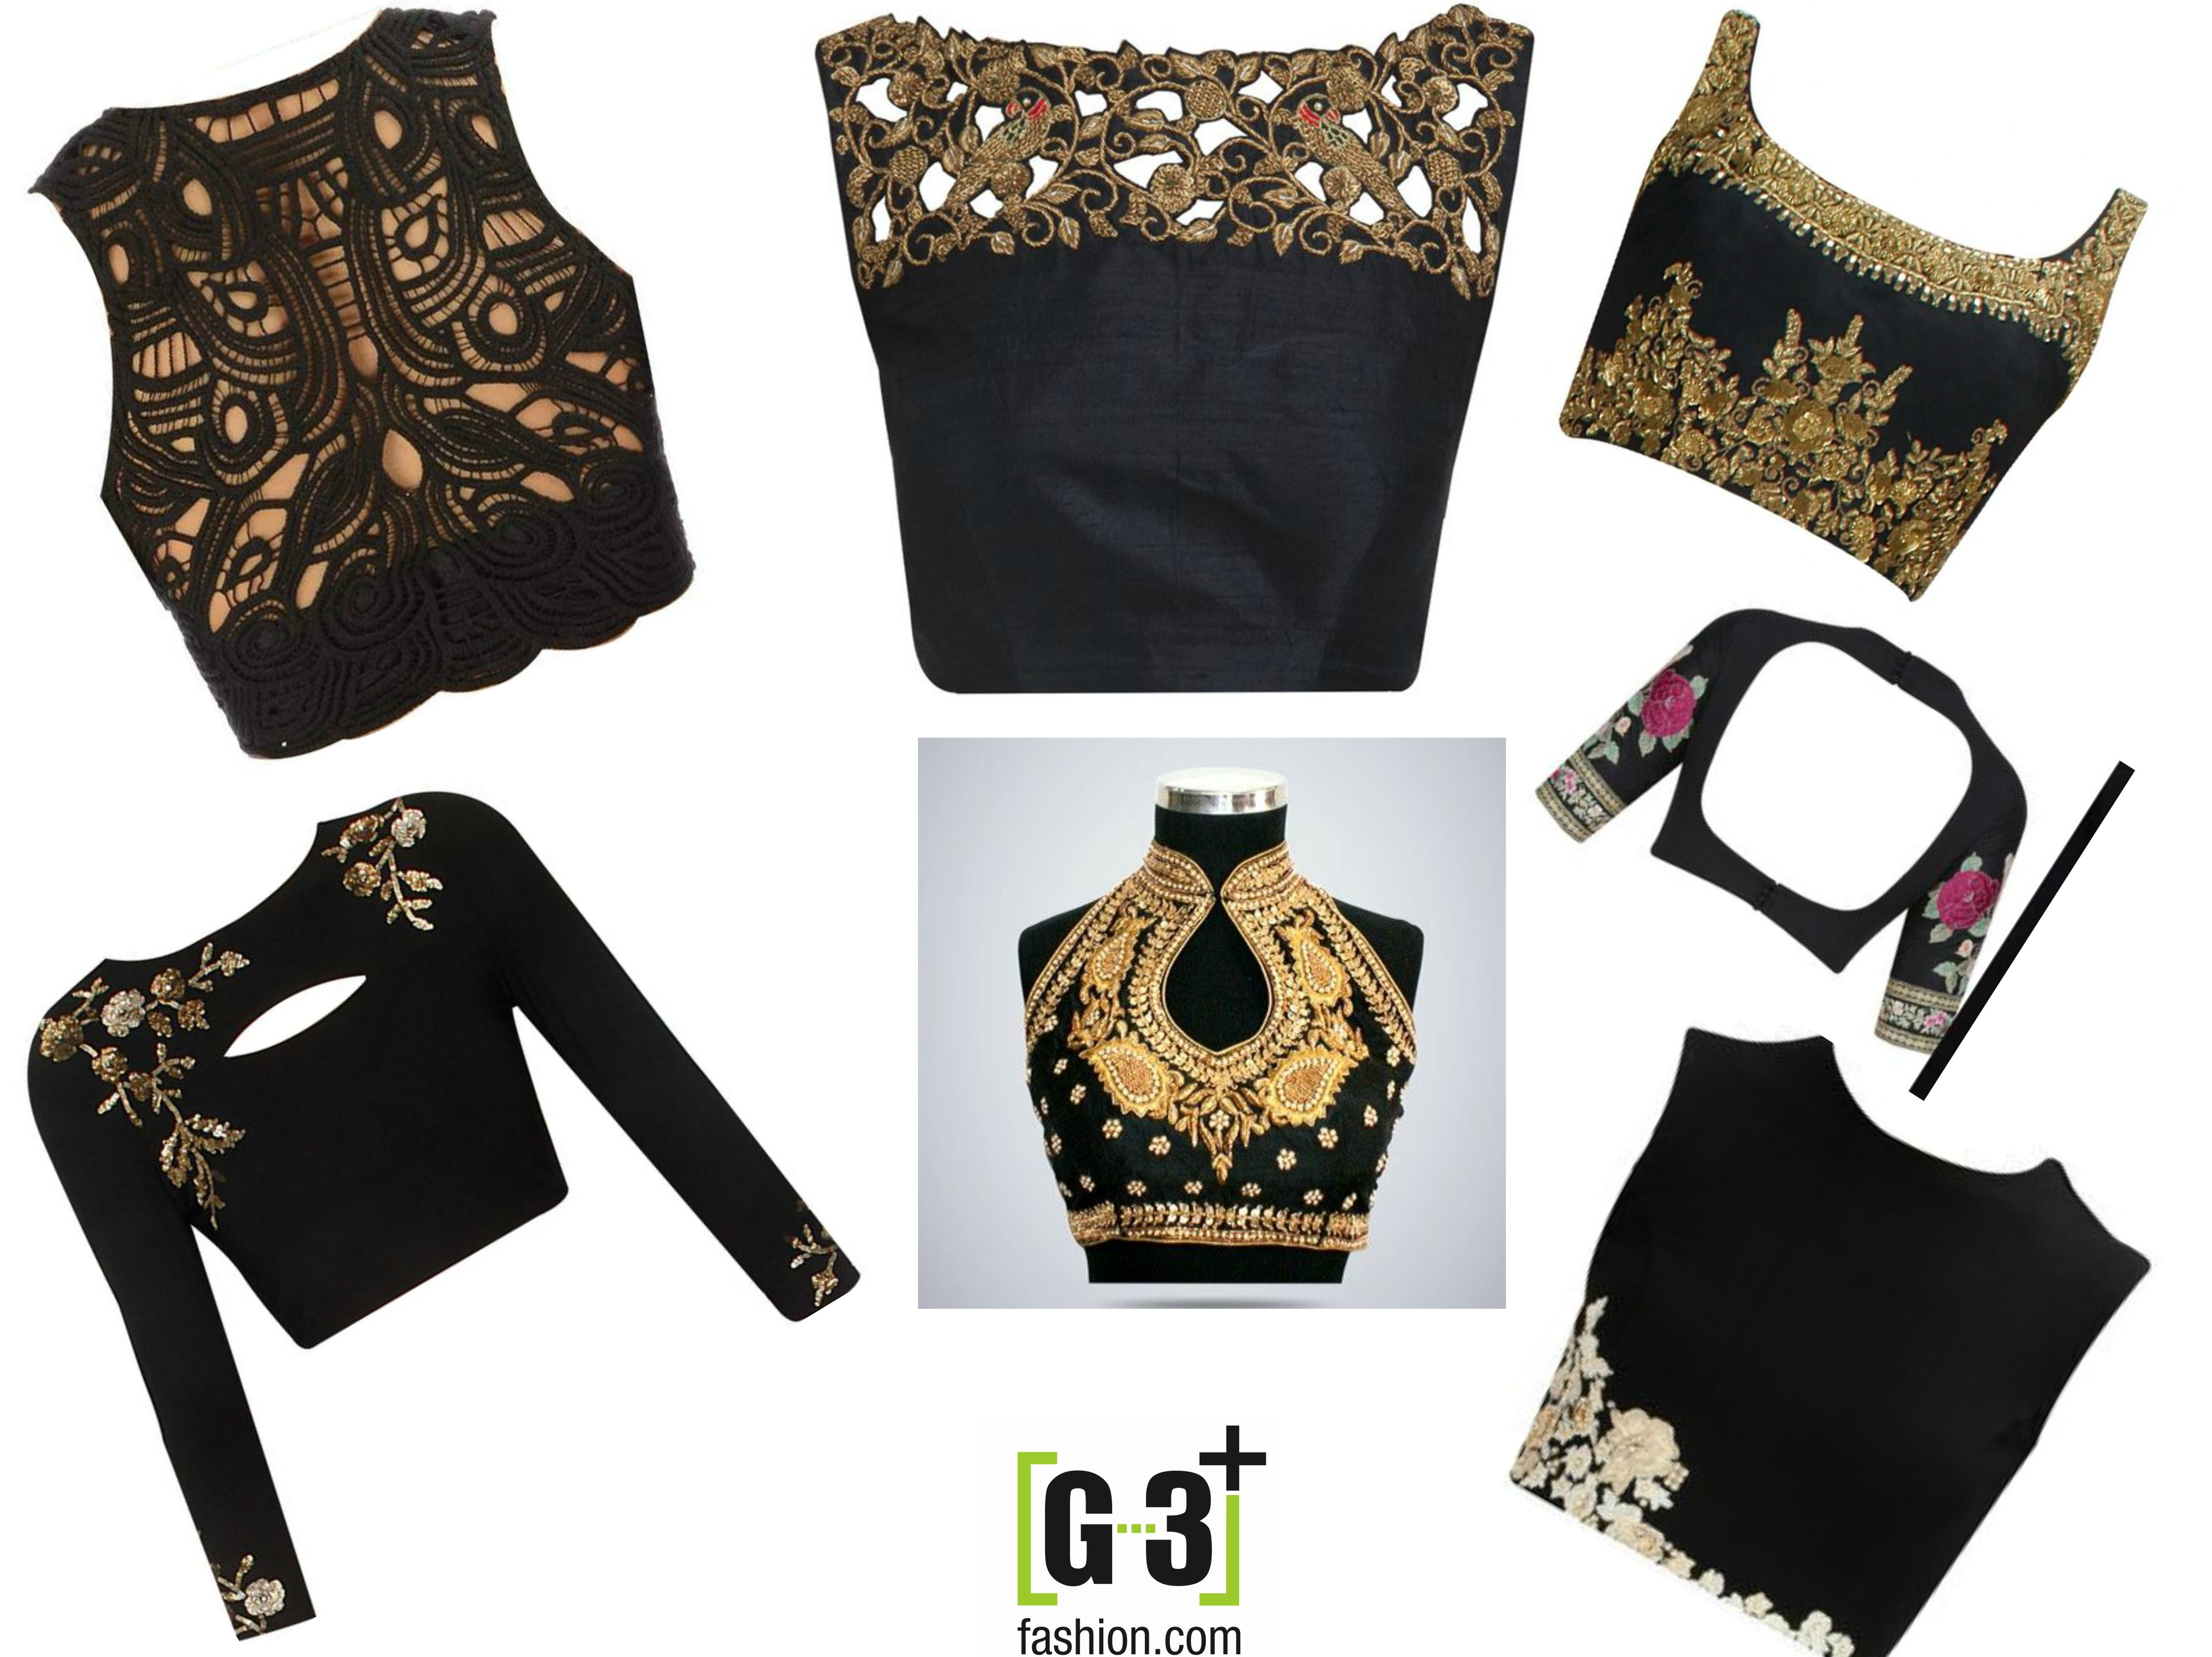 Top 12 Black Color Blouse Designs For Sarees To Try In 2018 G3